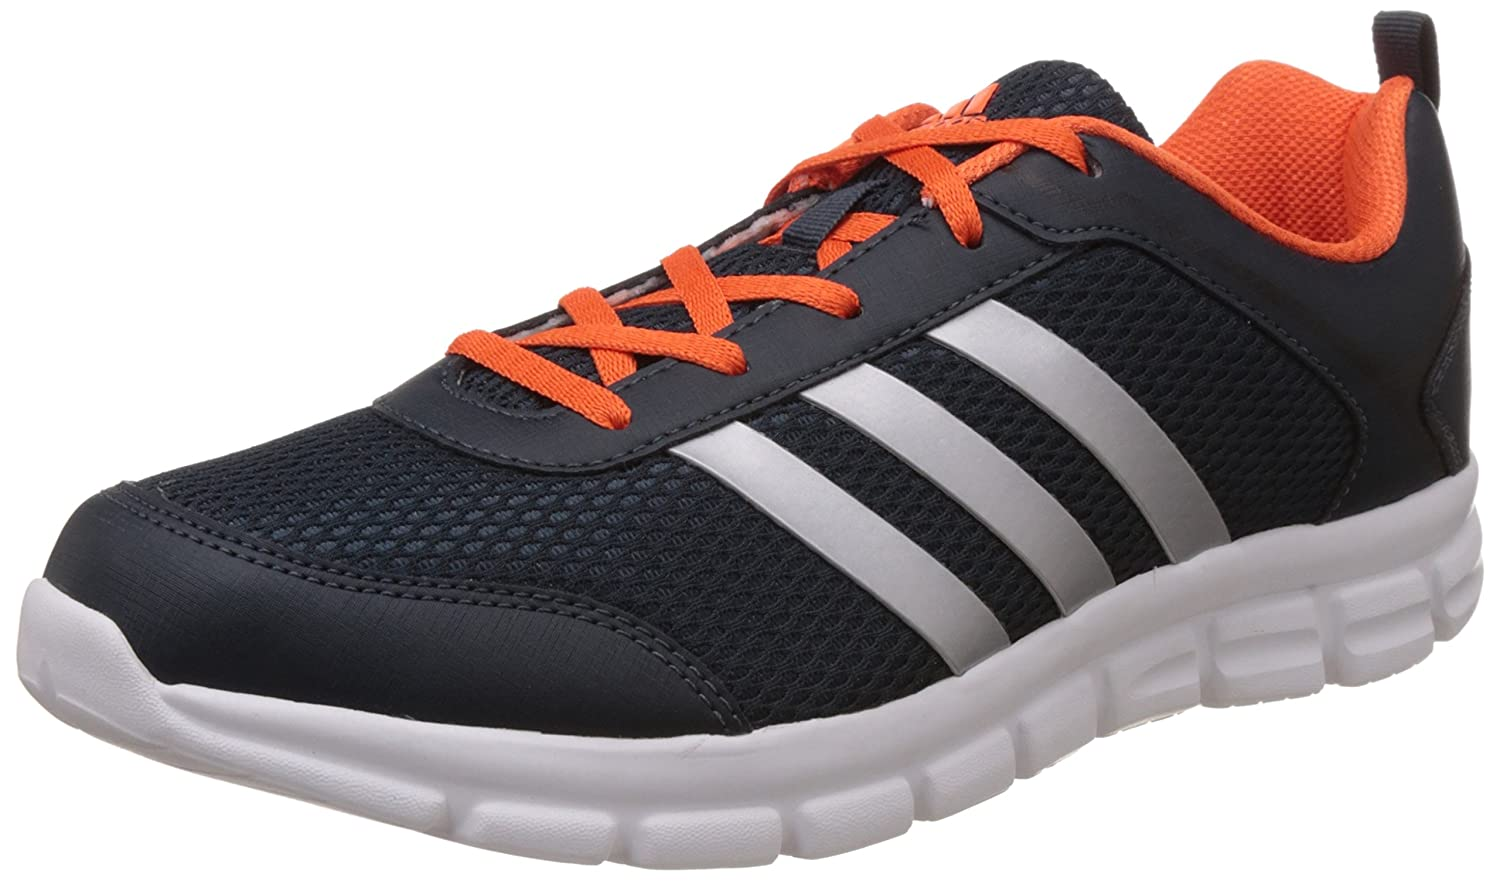 finest selection 9dad5 7946d Adidas Mens Marlin 5.0 M Running Shoes Buy Online at Low Prices in India  - Amazon.in